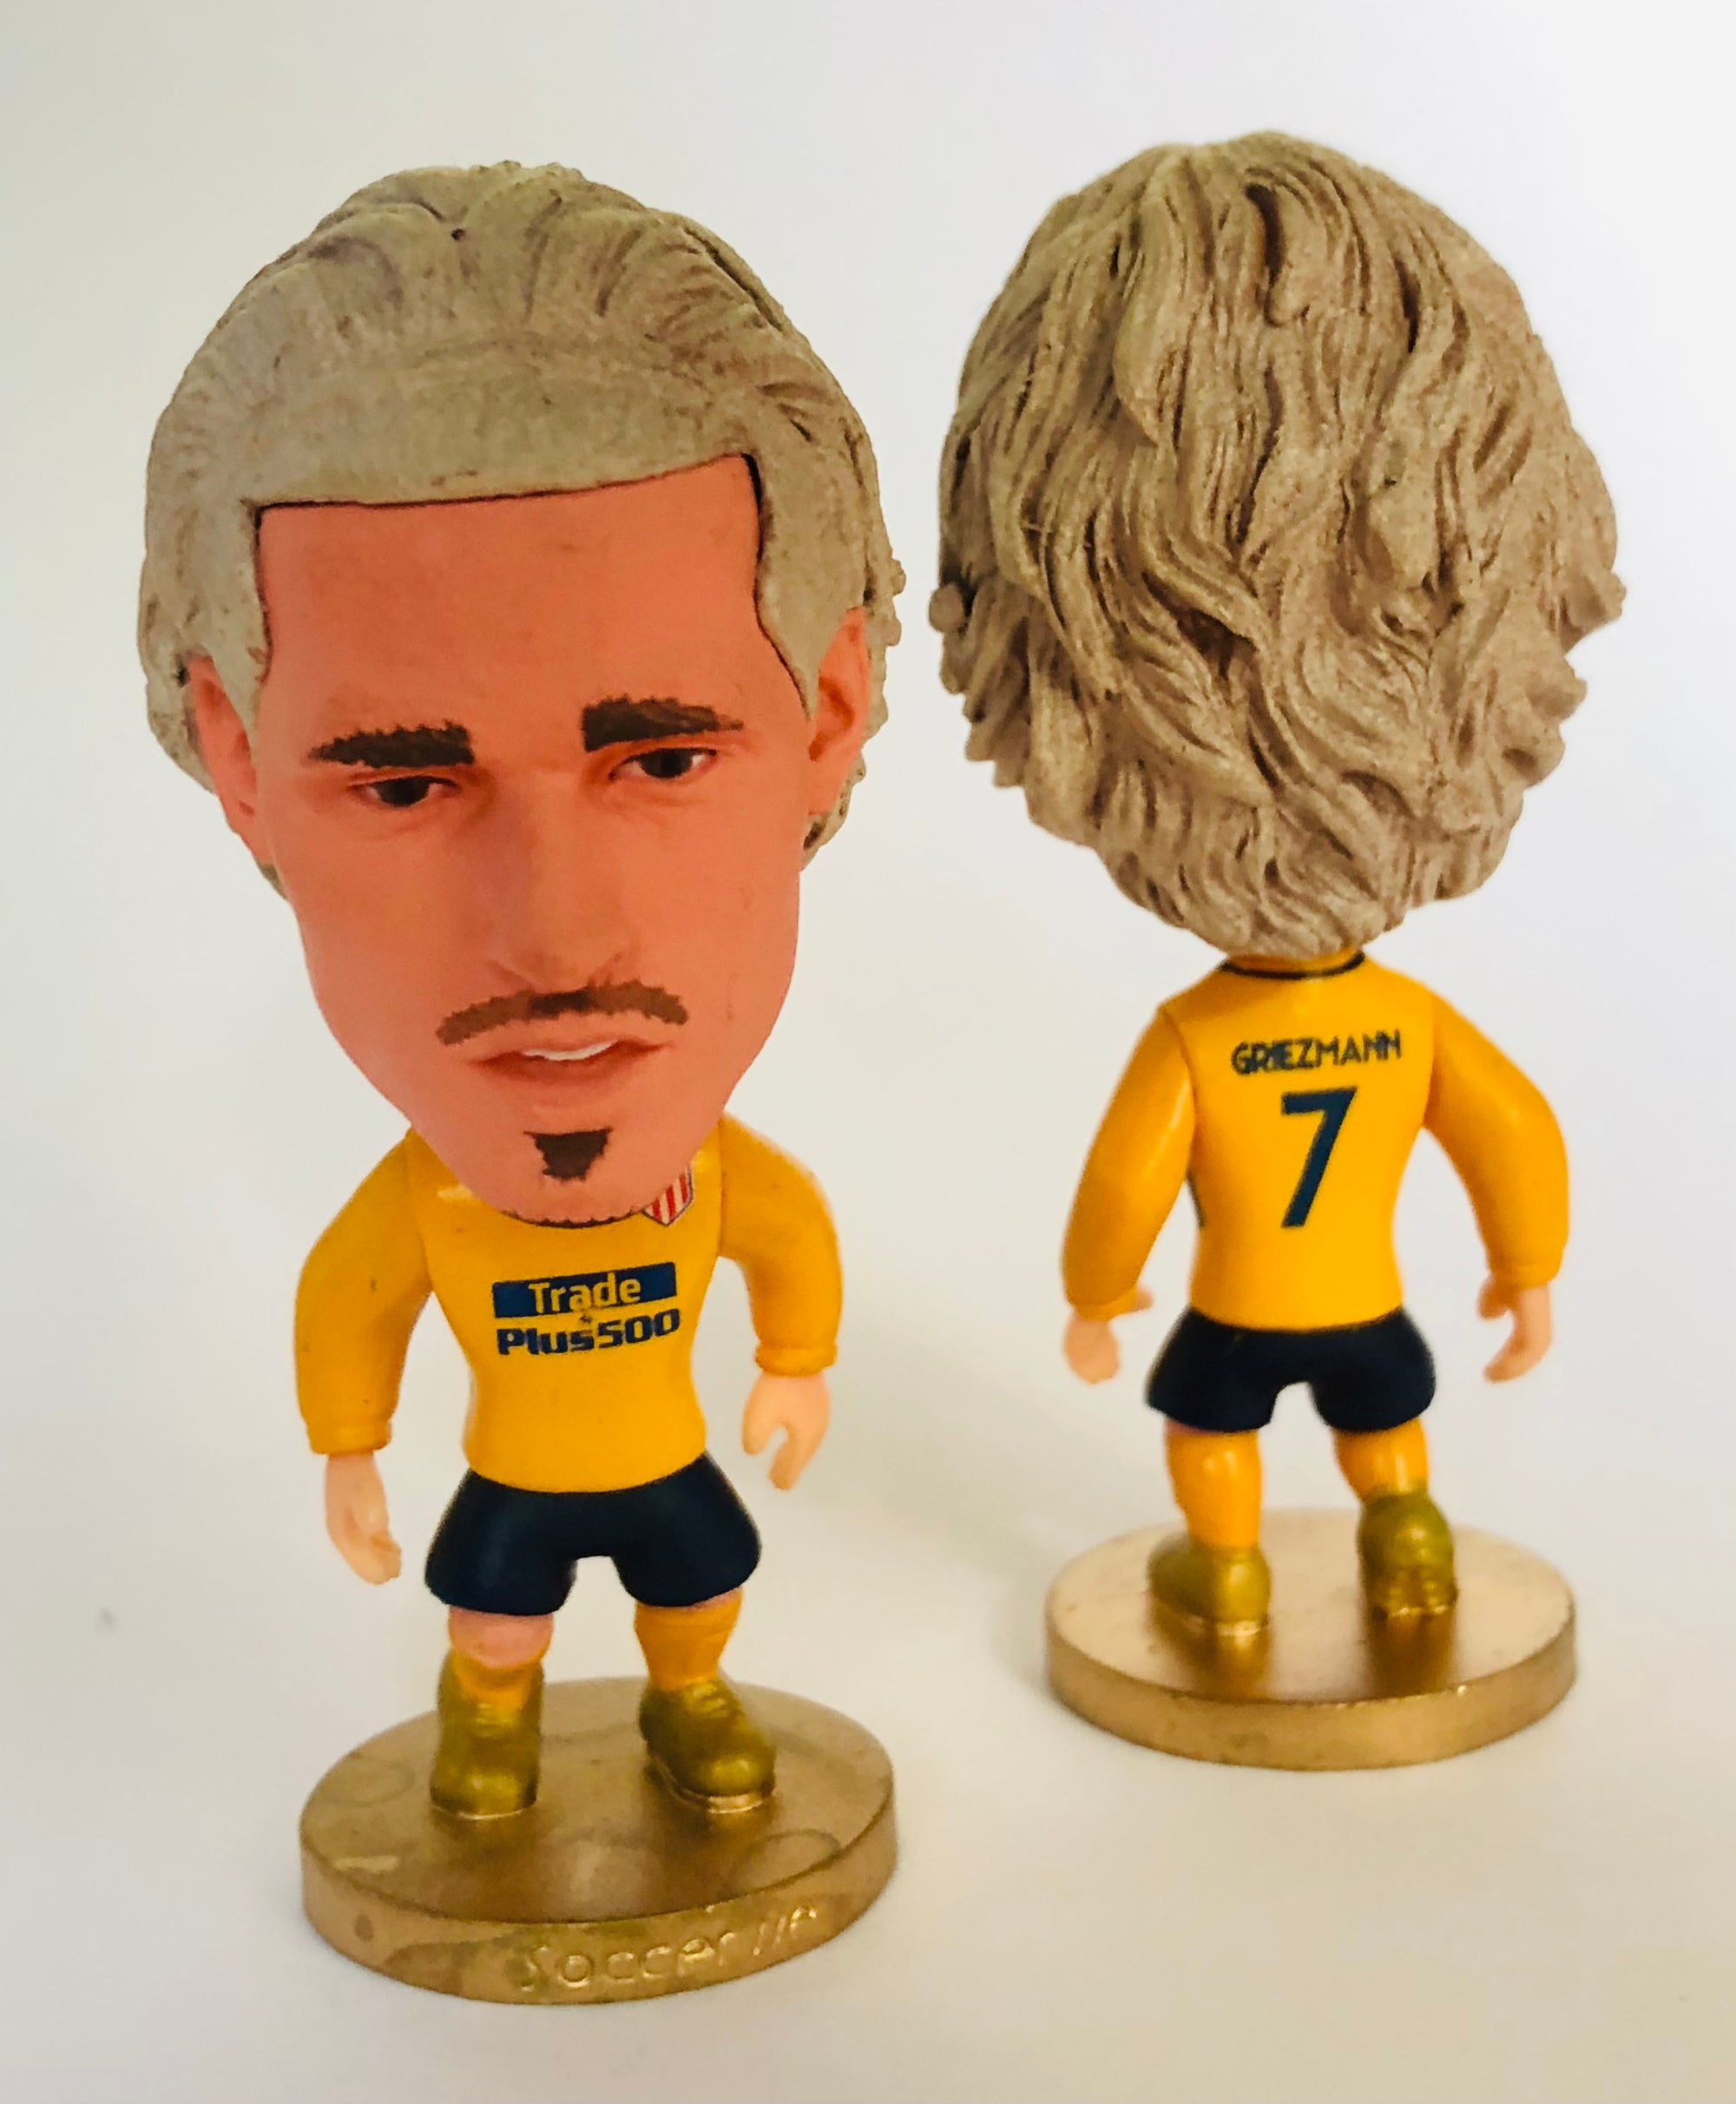 Griezmann Atletico Madrid Figurine (Away Kit)